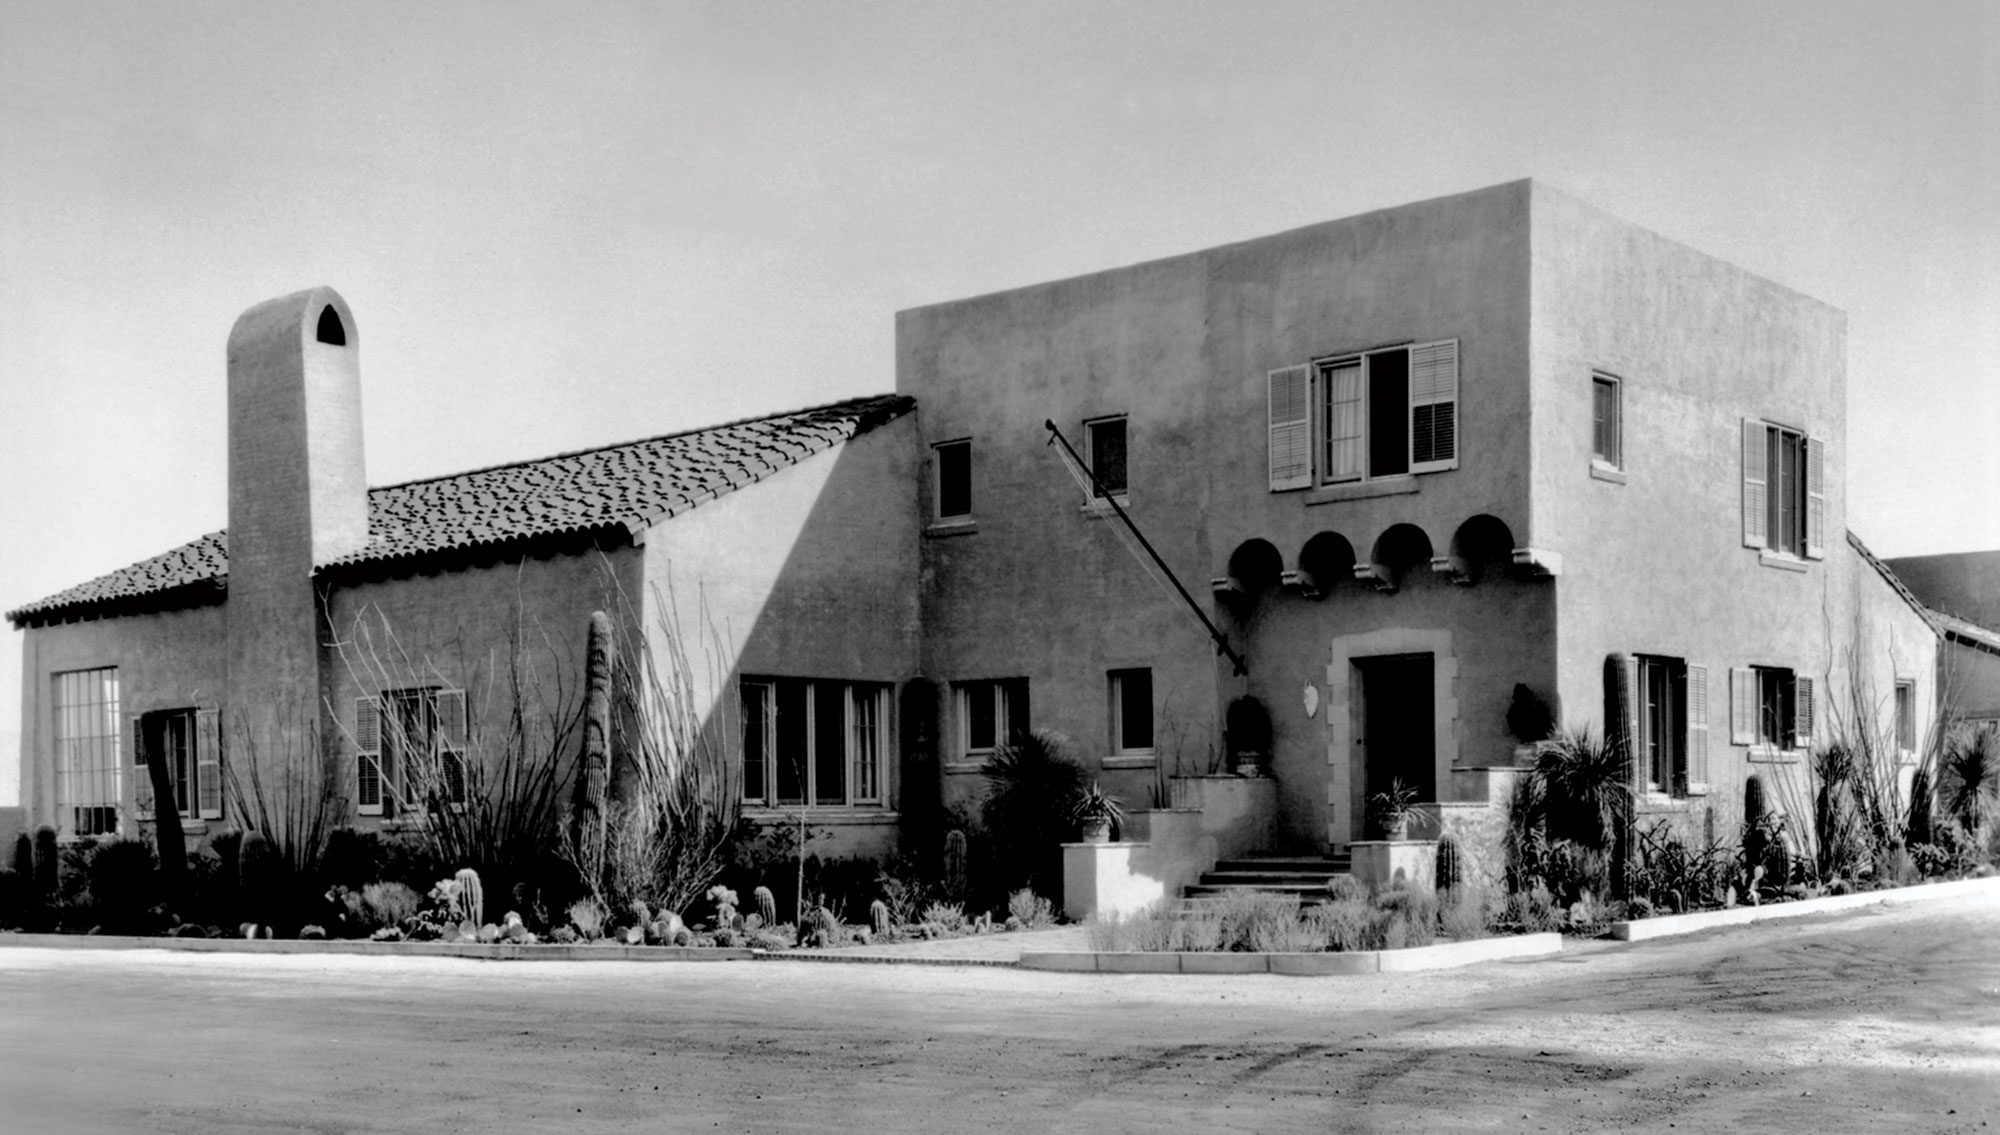 The Arizona Inn, 1932; Photo courtesy Arizona Inn